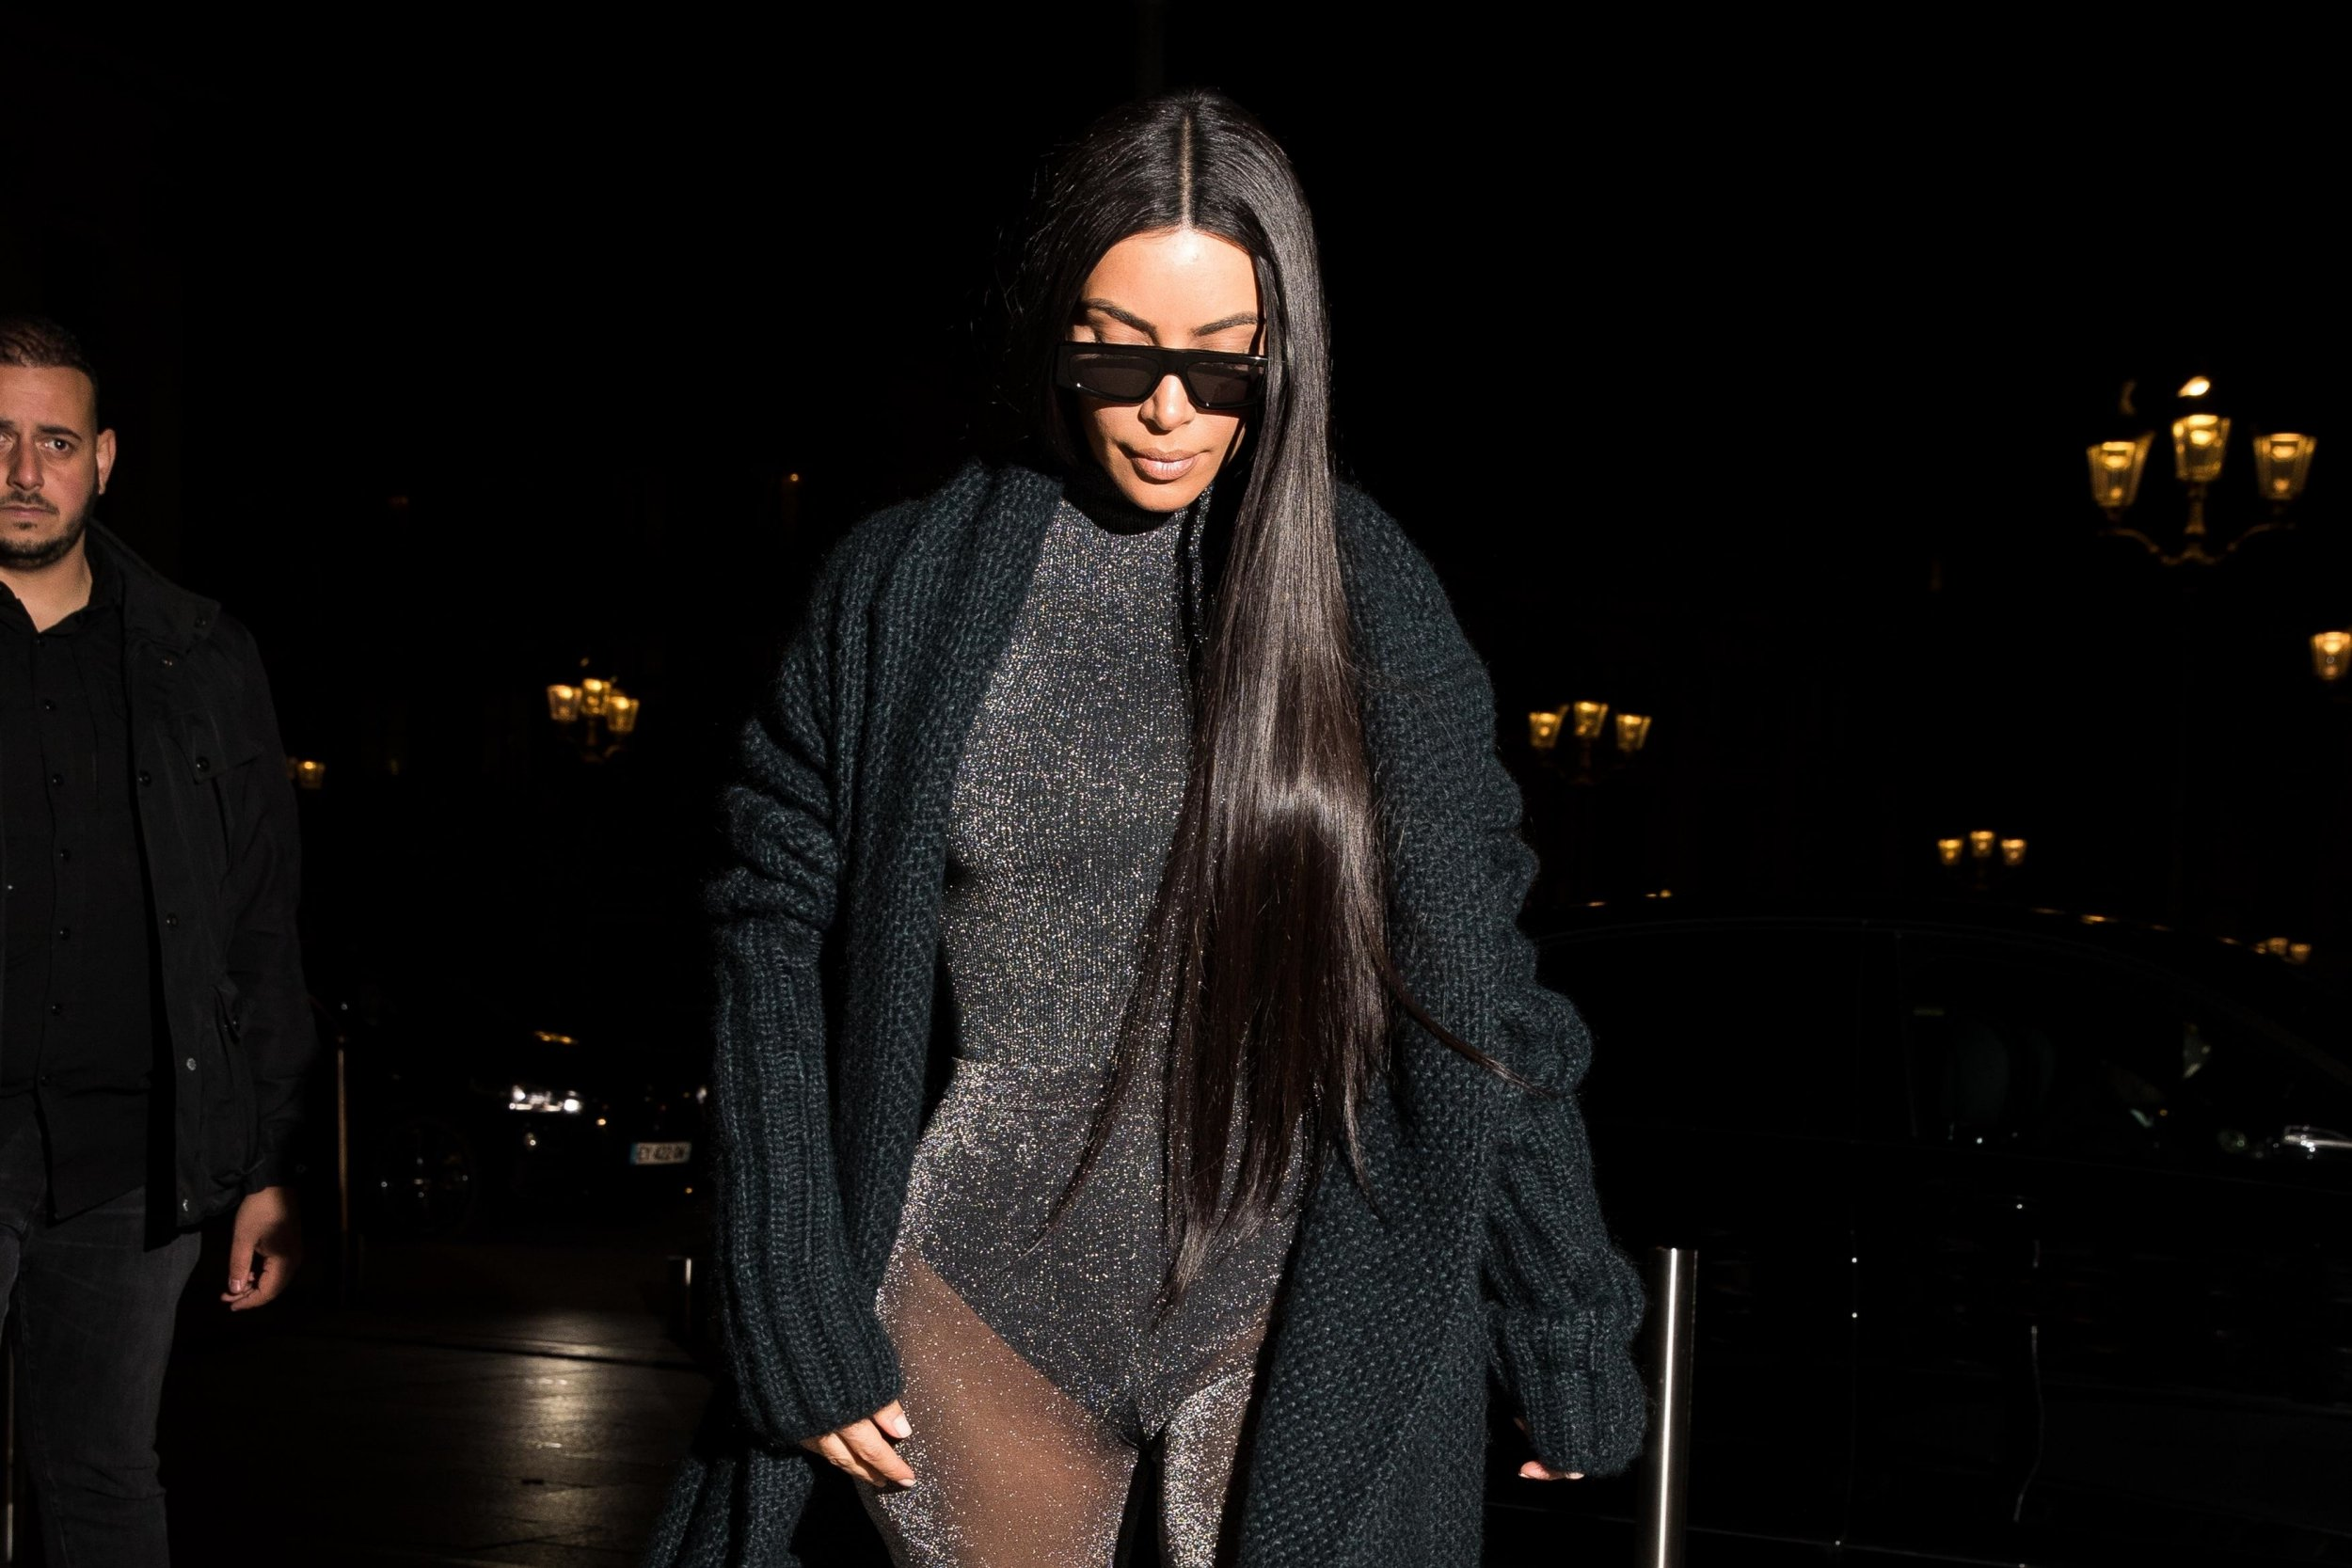 BGUK_1528028 - ** RIGHTS: ONLY UNITED KINGDOM ** Paris, FRANCE - Kim Kardashian returns to the Ritz Hotel after dinner at the Ferdi restaurant in Paris, France Pictured: Kim Kardashian BACKGRID UK 25 MARCH 2019 BYLINE MUST READ: BEST IMAGE / BACKGRID UK: +44 208 344 2007 / uksales@backgrid.com USA: +1 310 798 9111 / usasales@backgrid.com *UK Clients - Pictures Containing Children Please Pixelate Face Prior To Publication*